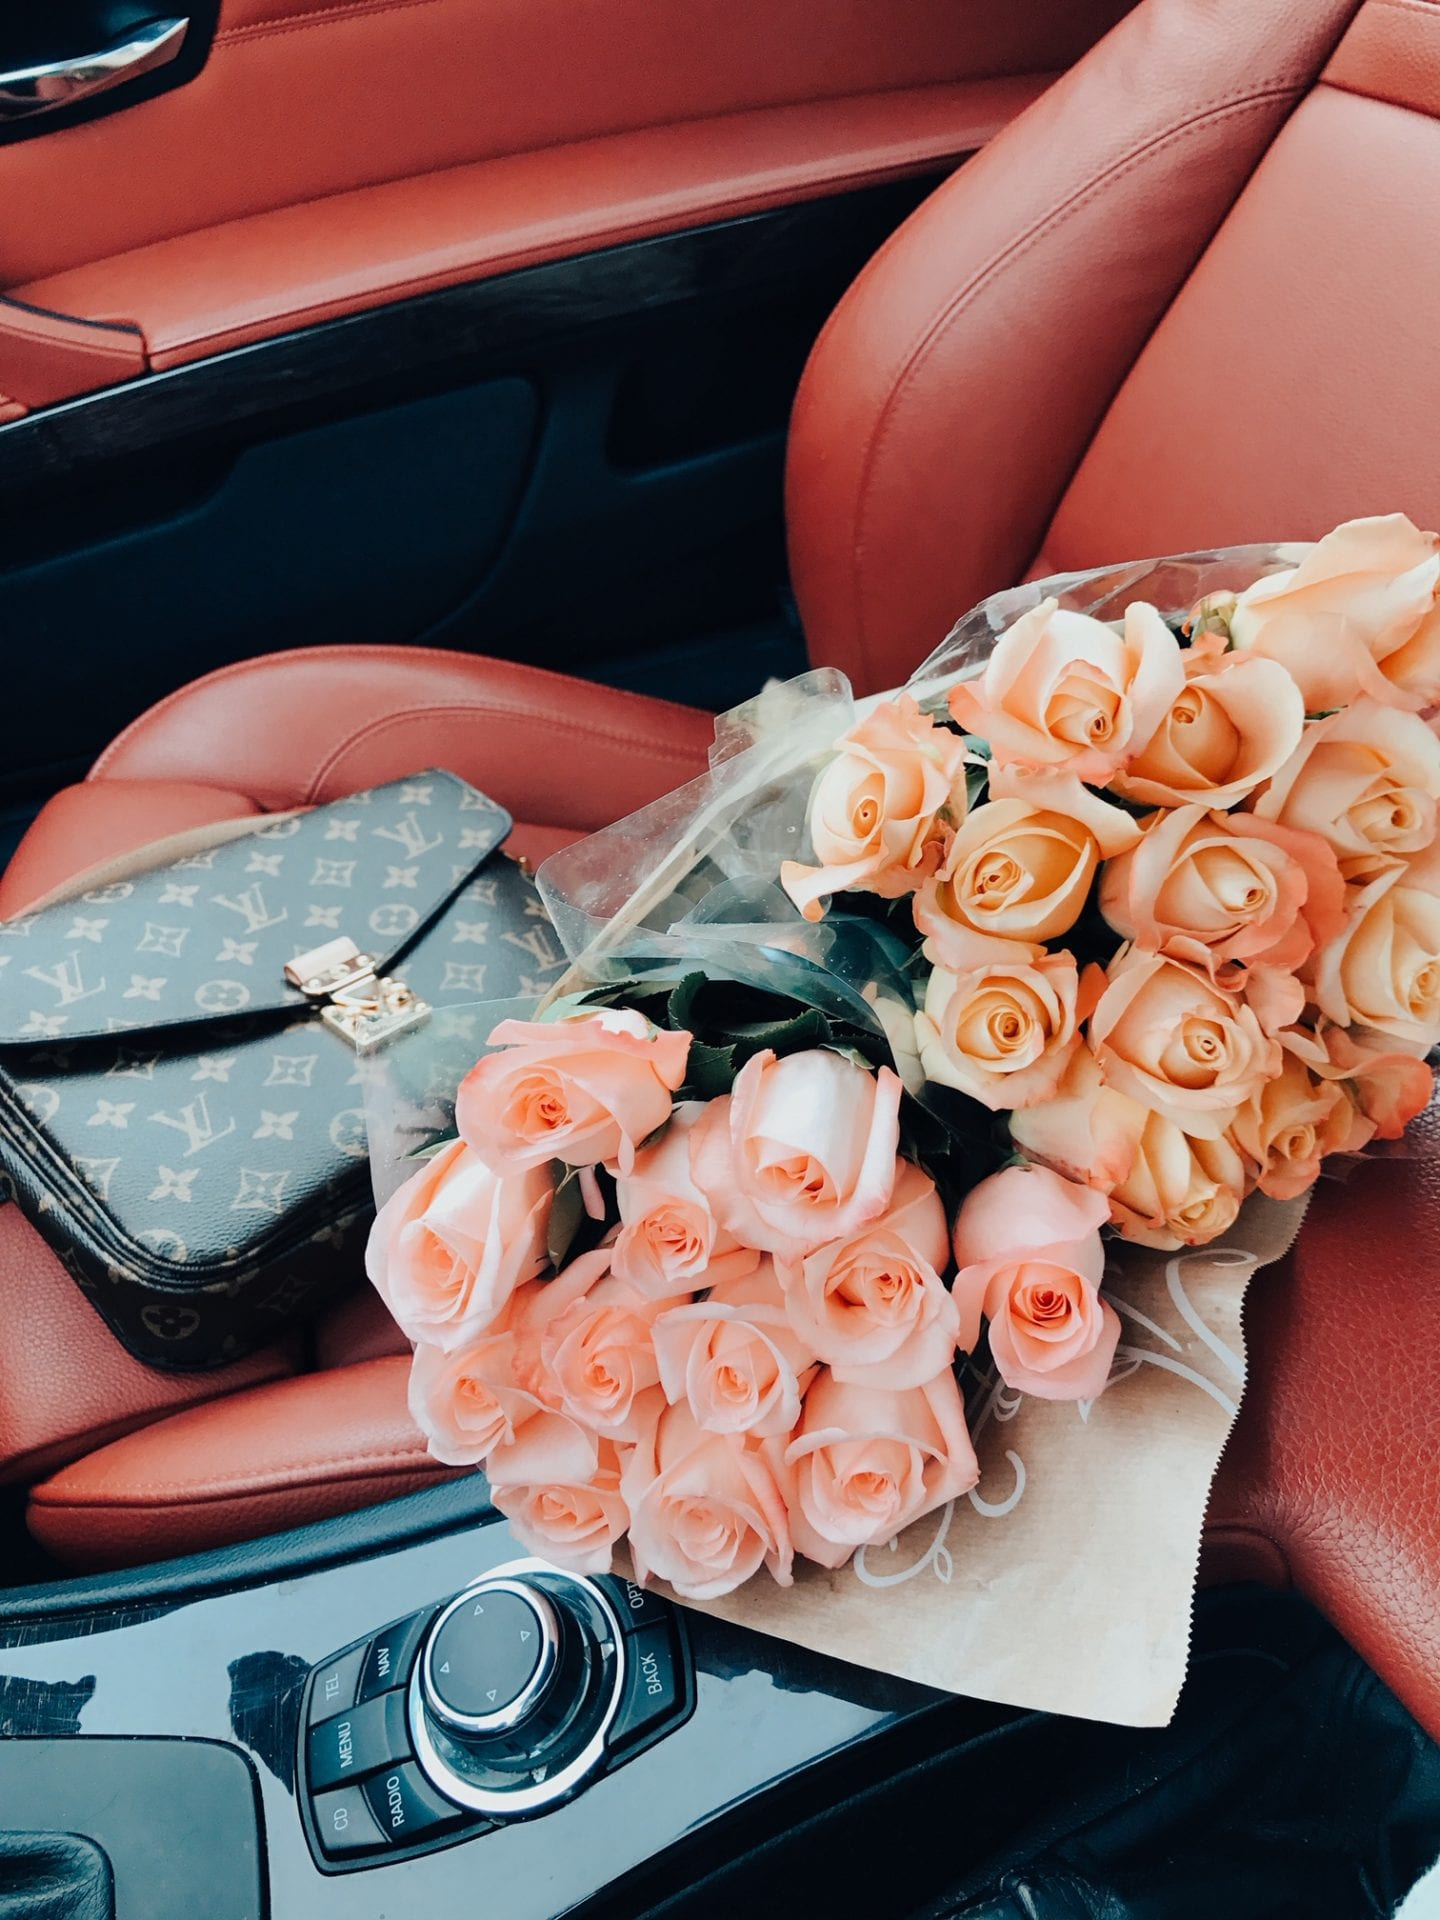 Best Valentine's Day Gifts for Her by popular San Francisco life and style blog, Just Add Glam: image of a Louis Vuitton clutch and pink roses on a red leather car seat.